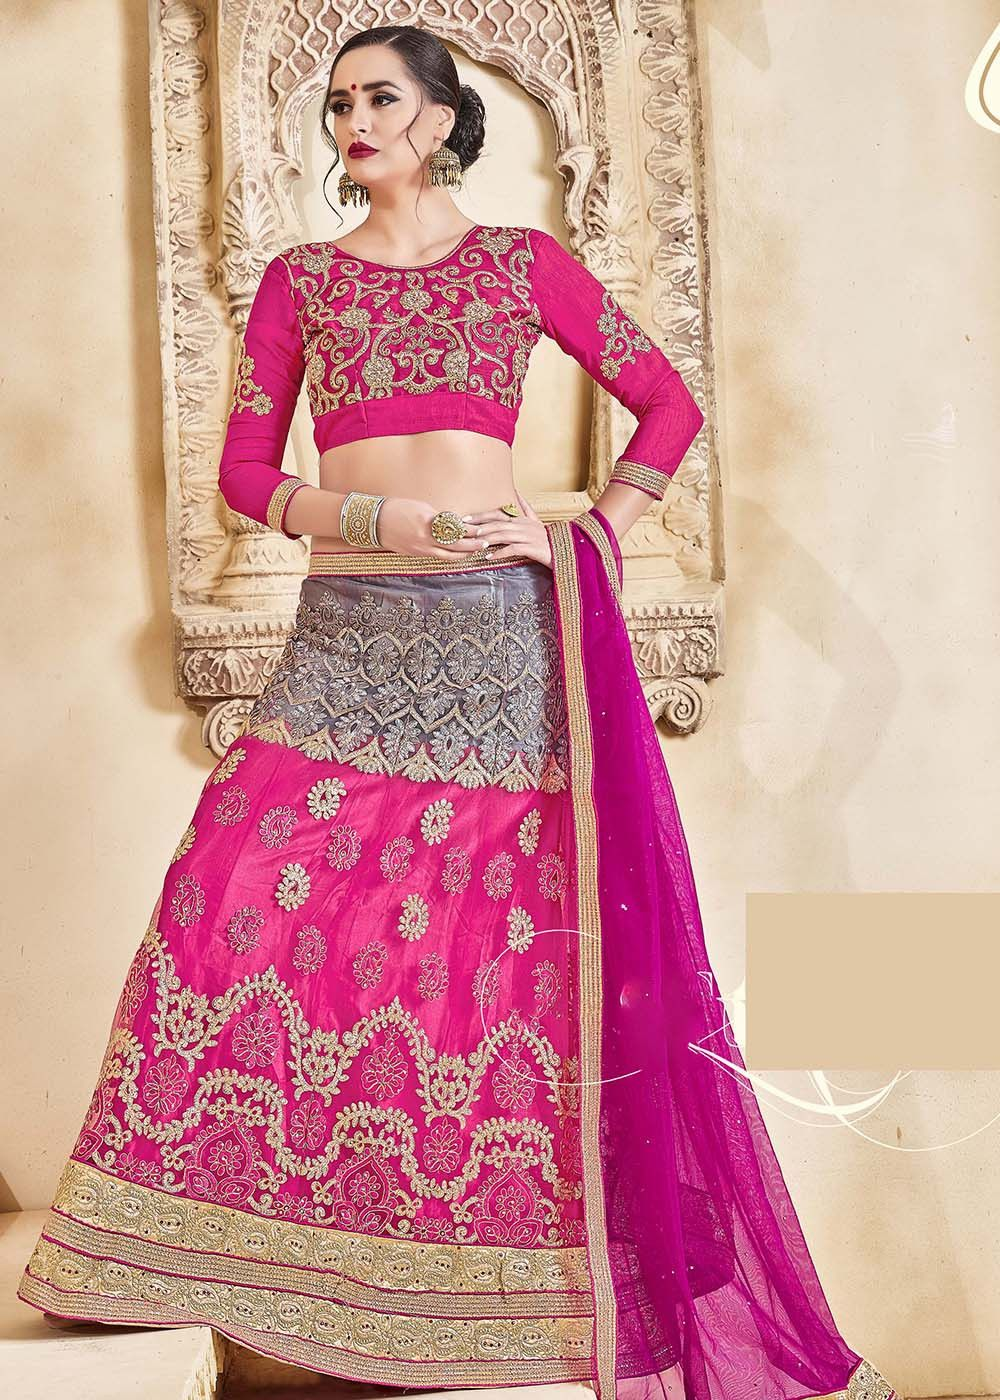 b5b4f2466a Look stunning in this #pink #grey shaded art #silk #lehenga decked with  #zari, #resham #embroidery, lace and stone work.